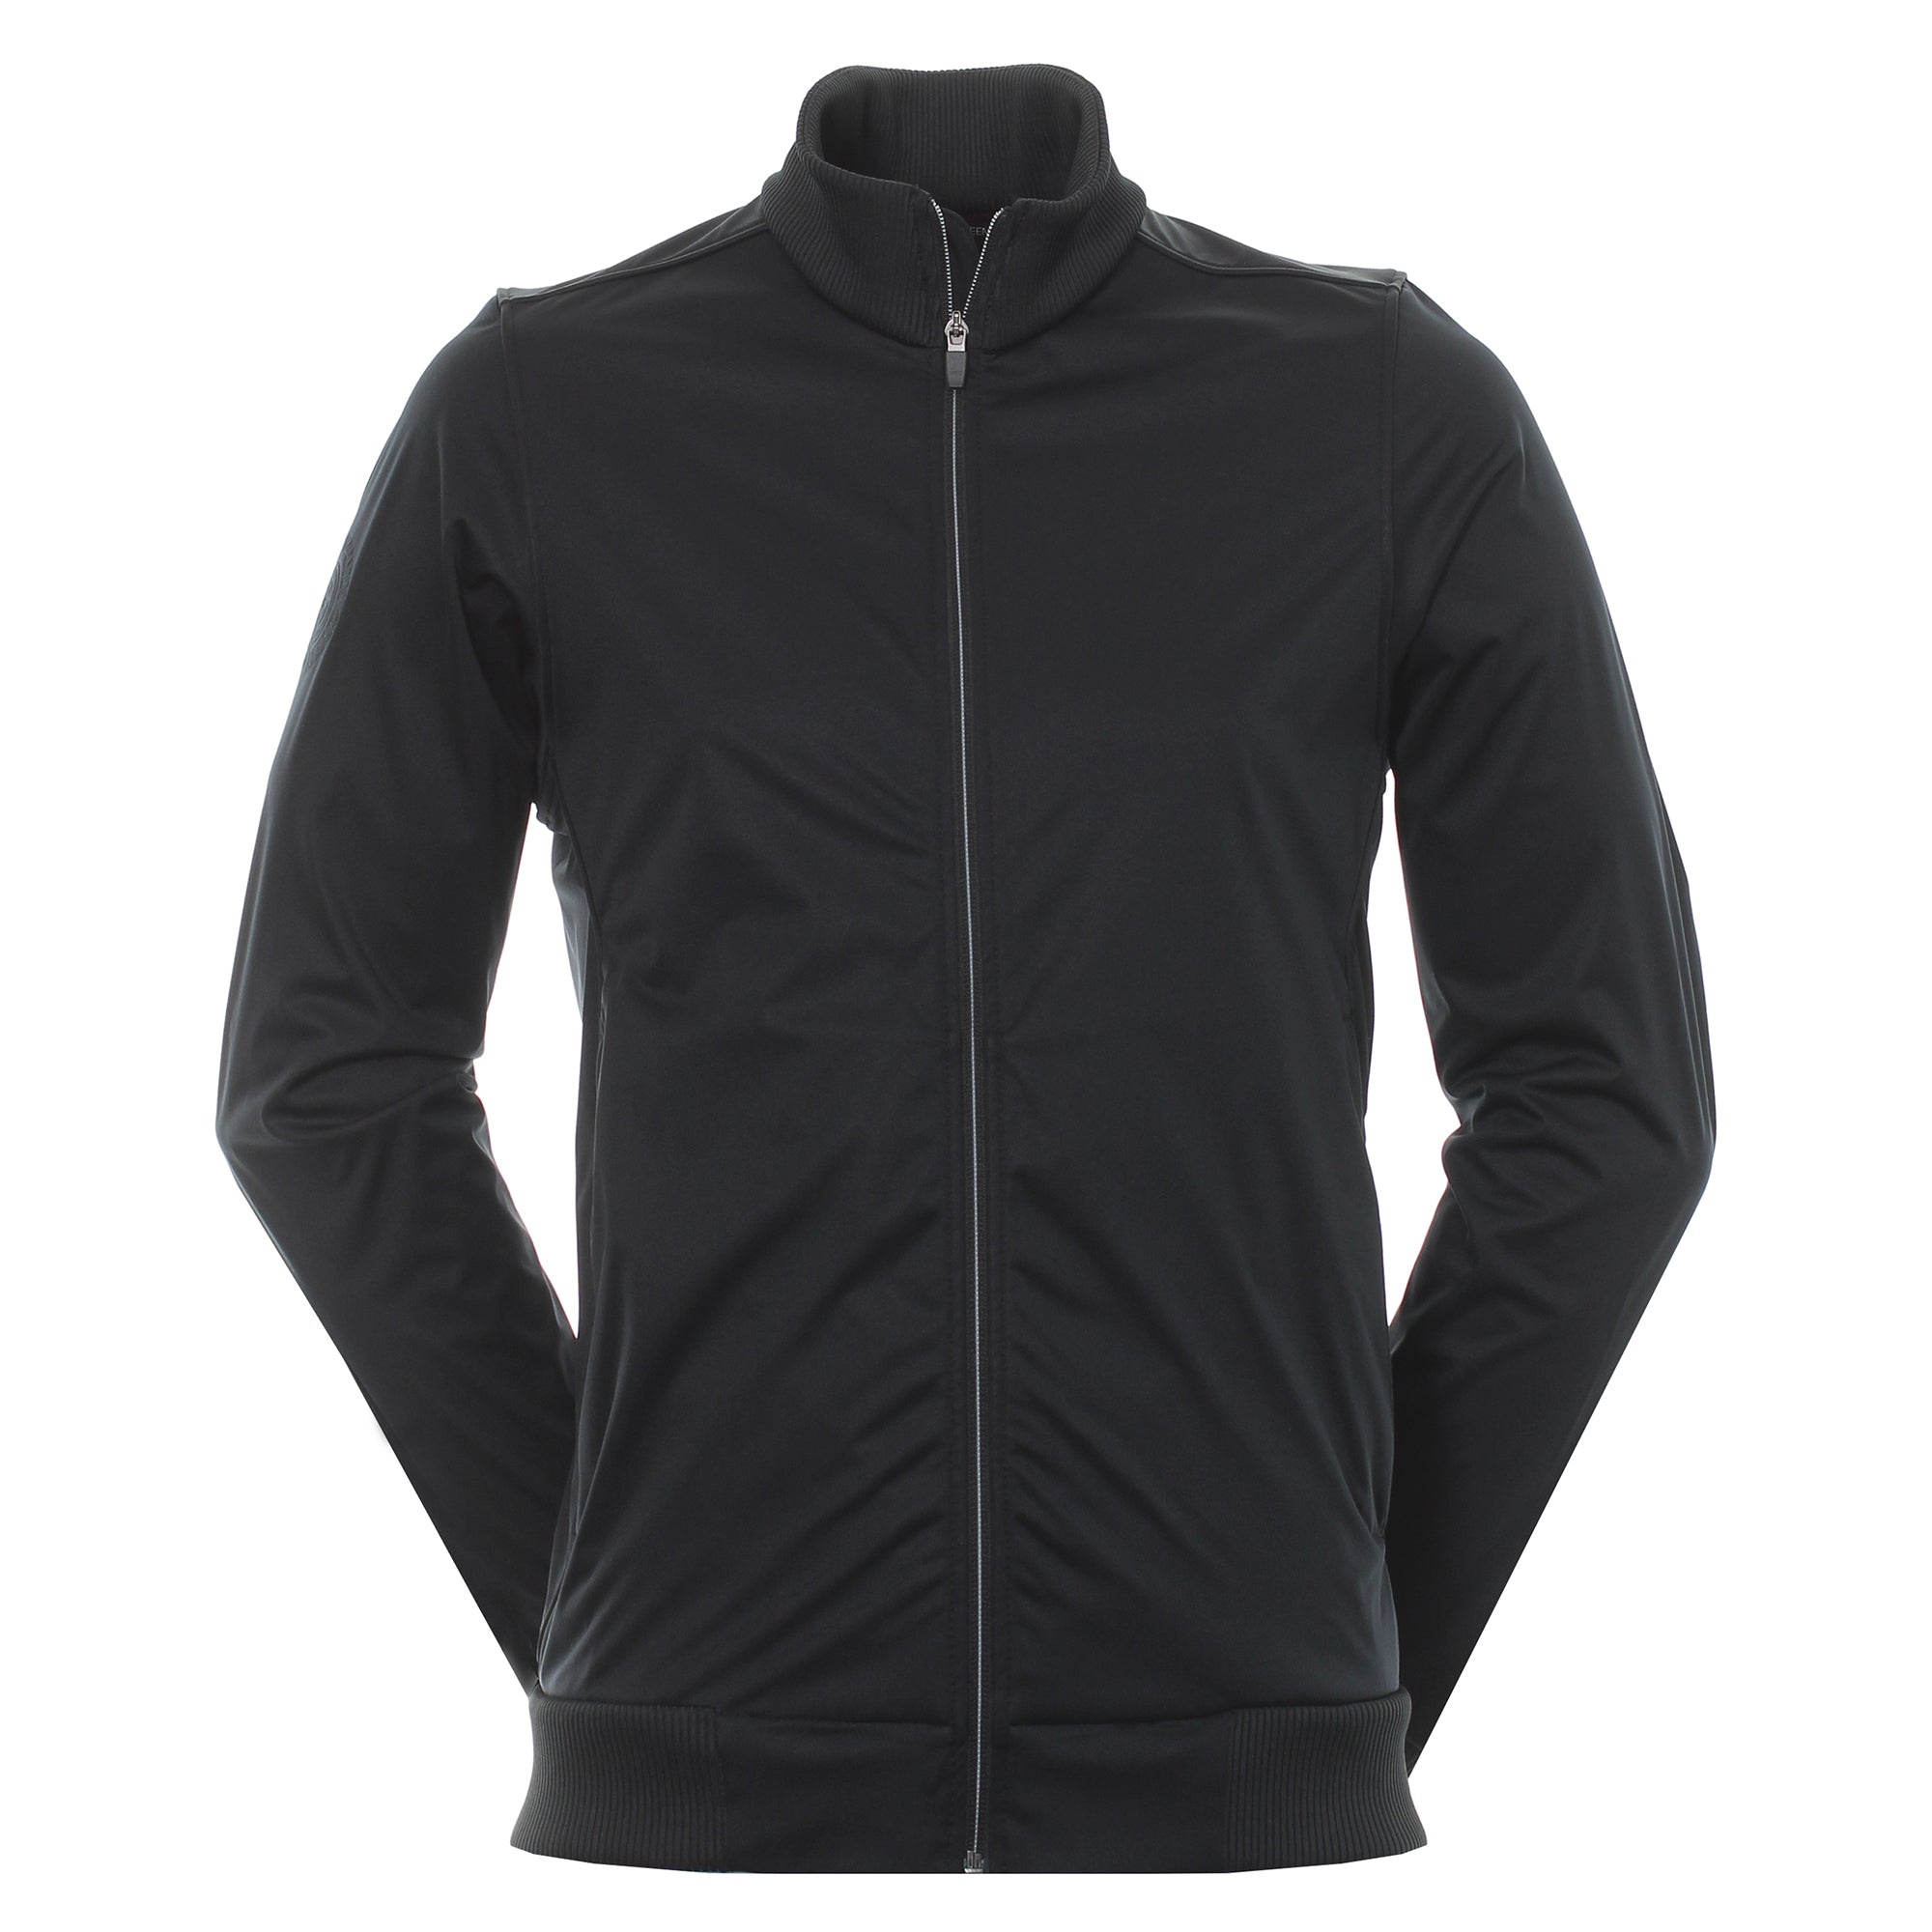 Galvin Green Lexis Interface-1 Golf Jacket